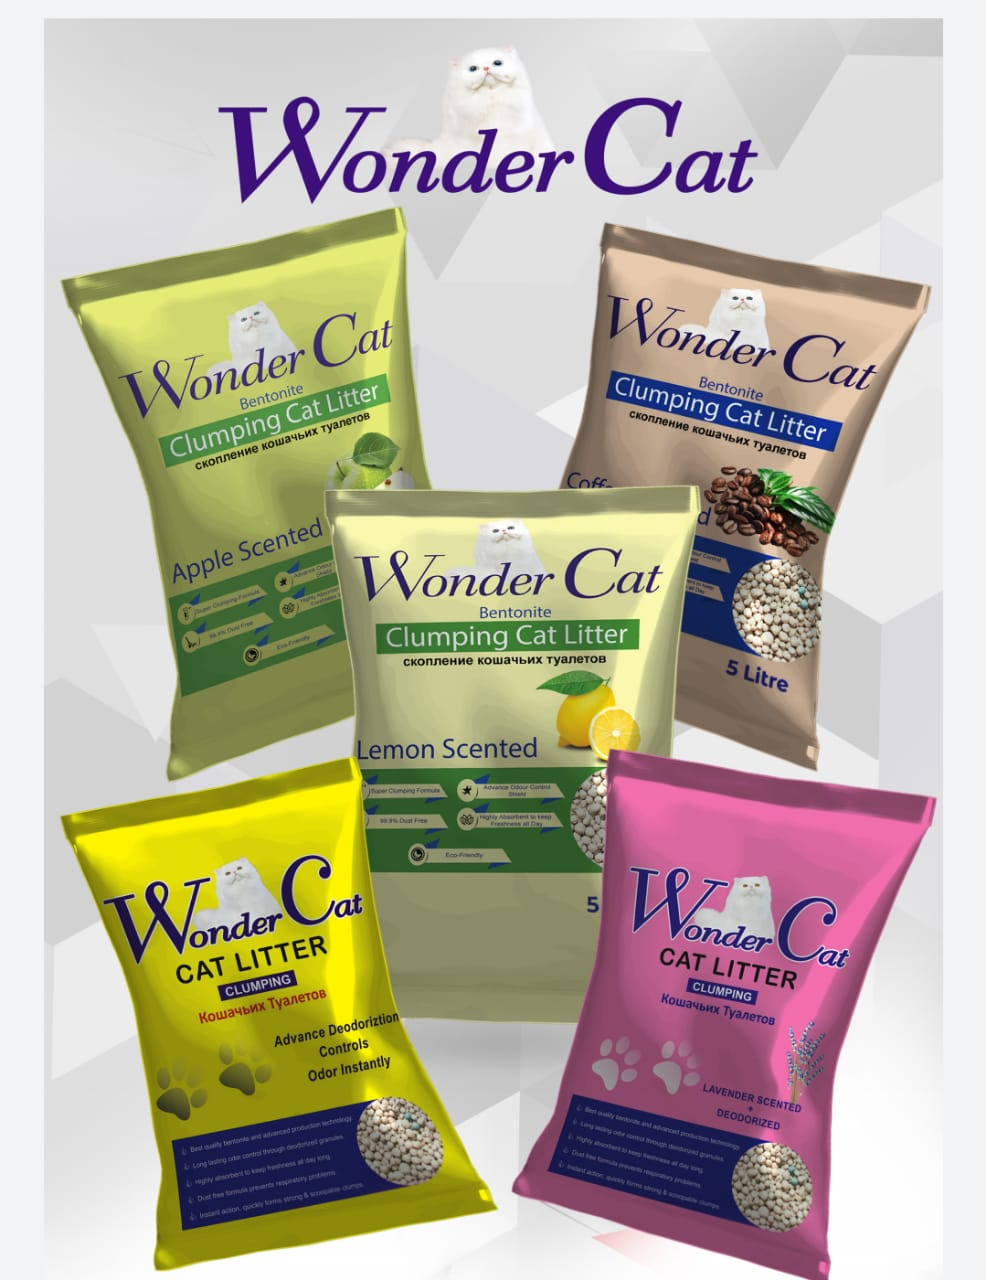 Wonder Cat Litter Lavender Perfume - Pet Accessories - Pet Store - Pet supplies